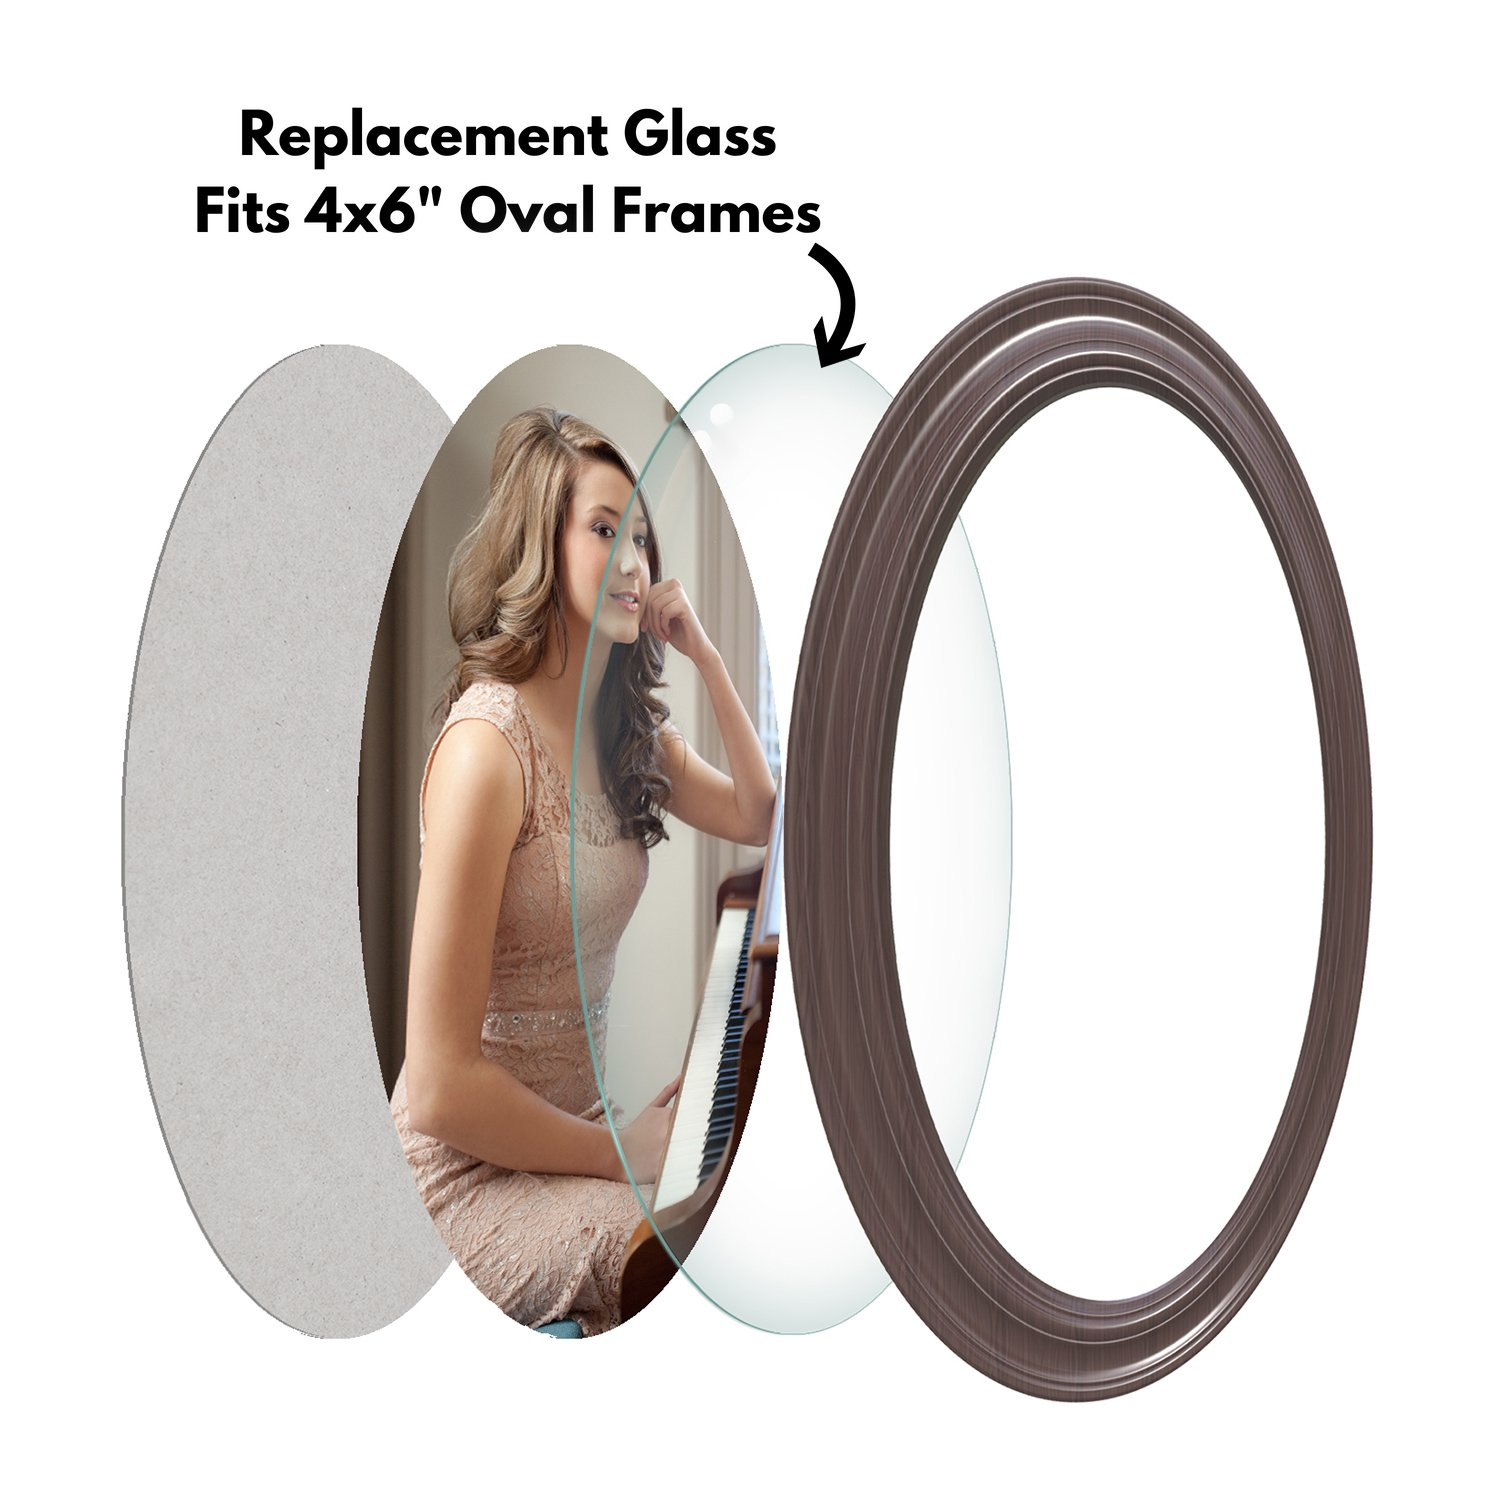 Icona Bay Oval 4x6 Glass Replacement for Frames /(2 Pack/) - Picture ...